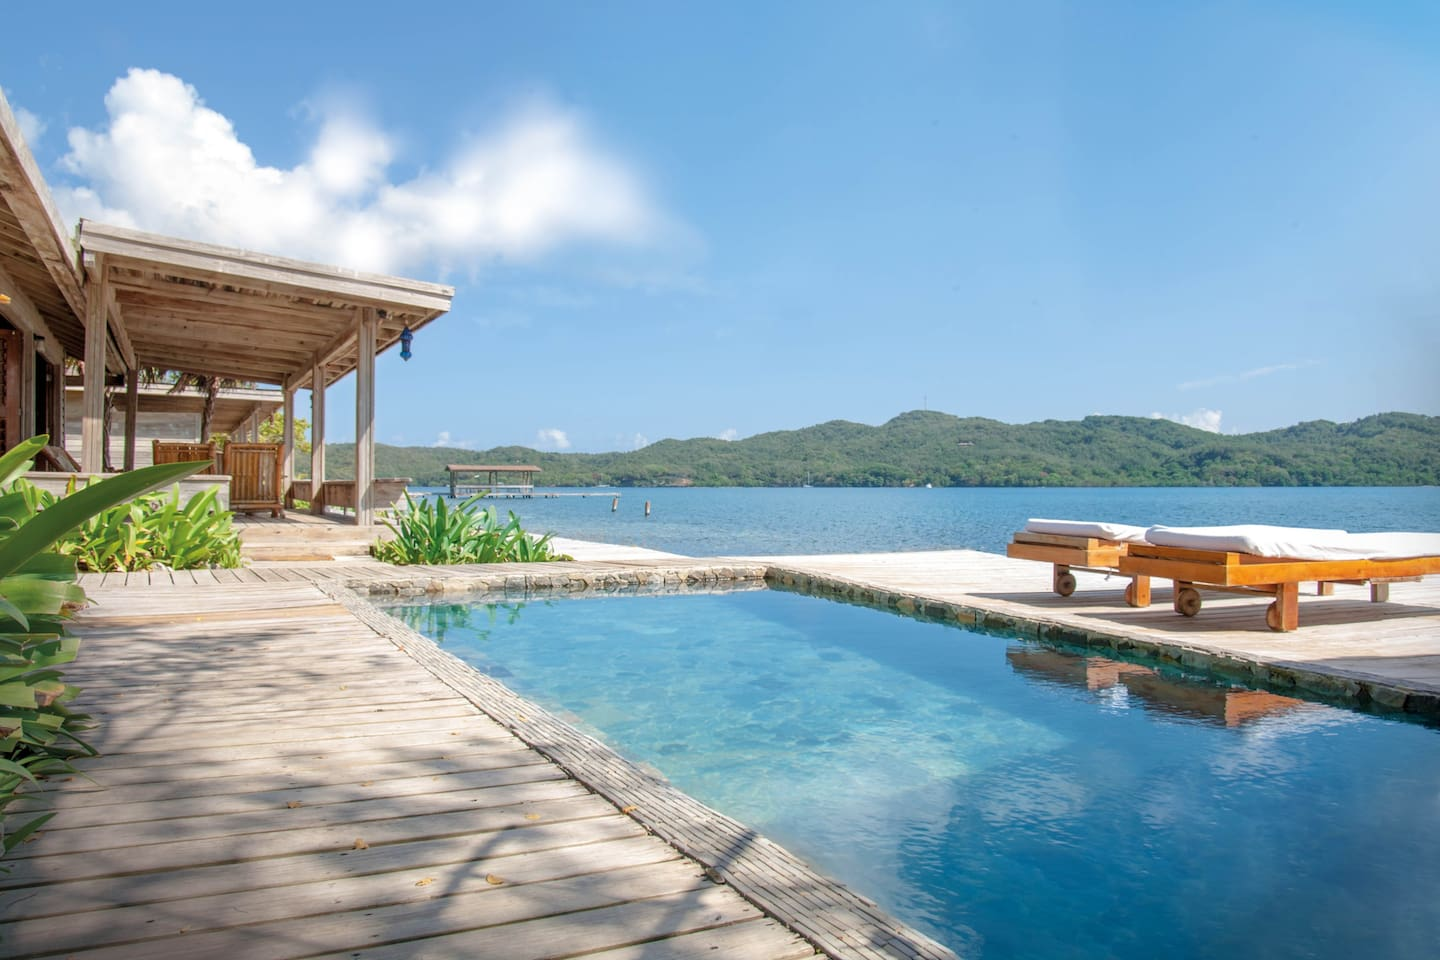 Pool and deck on our private island